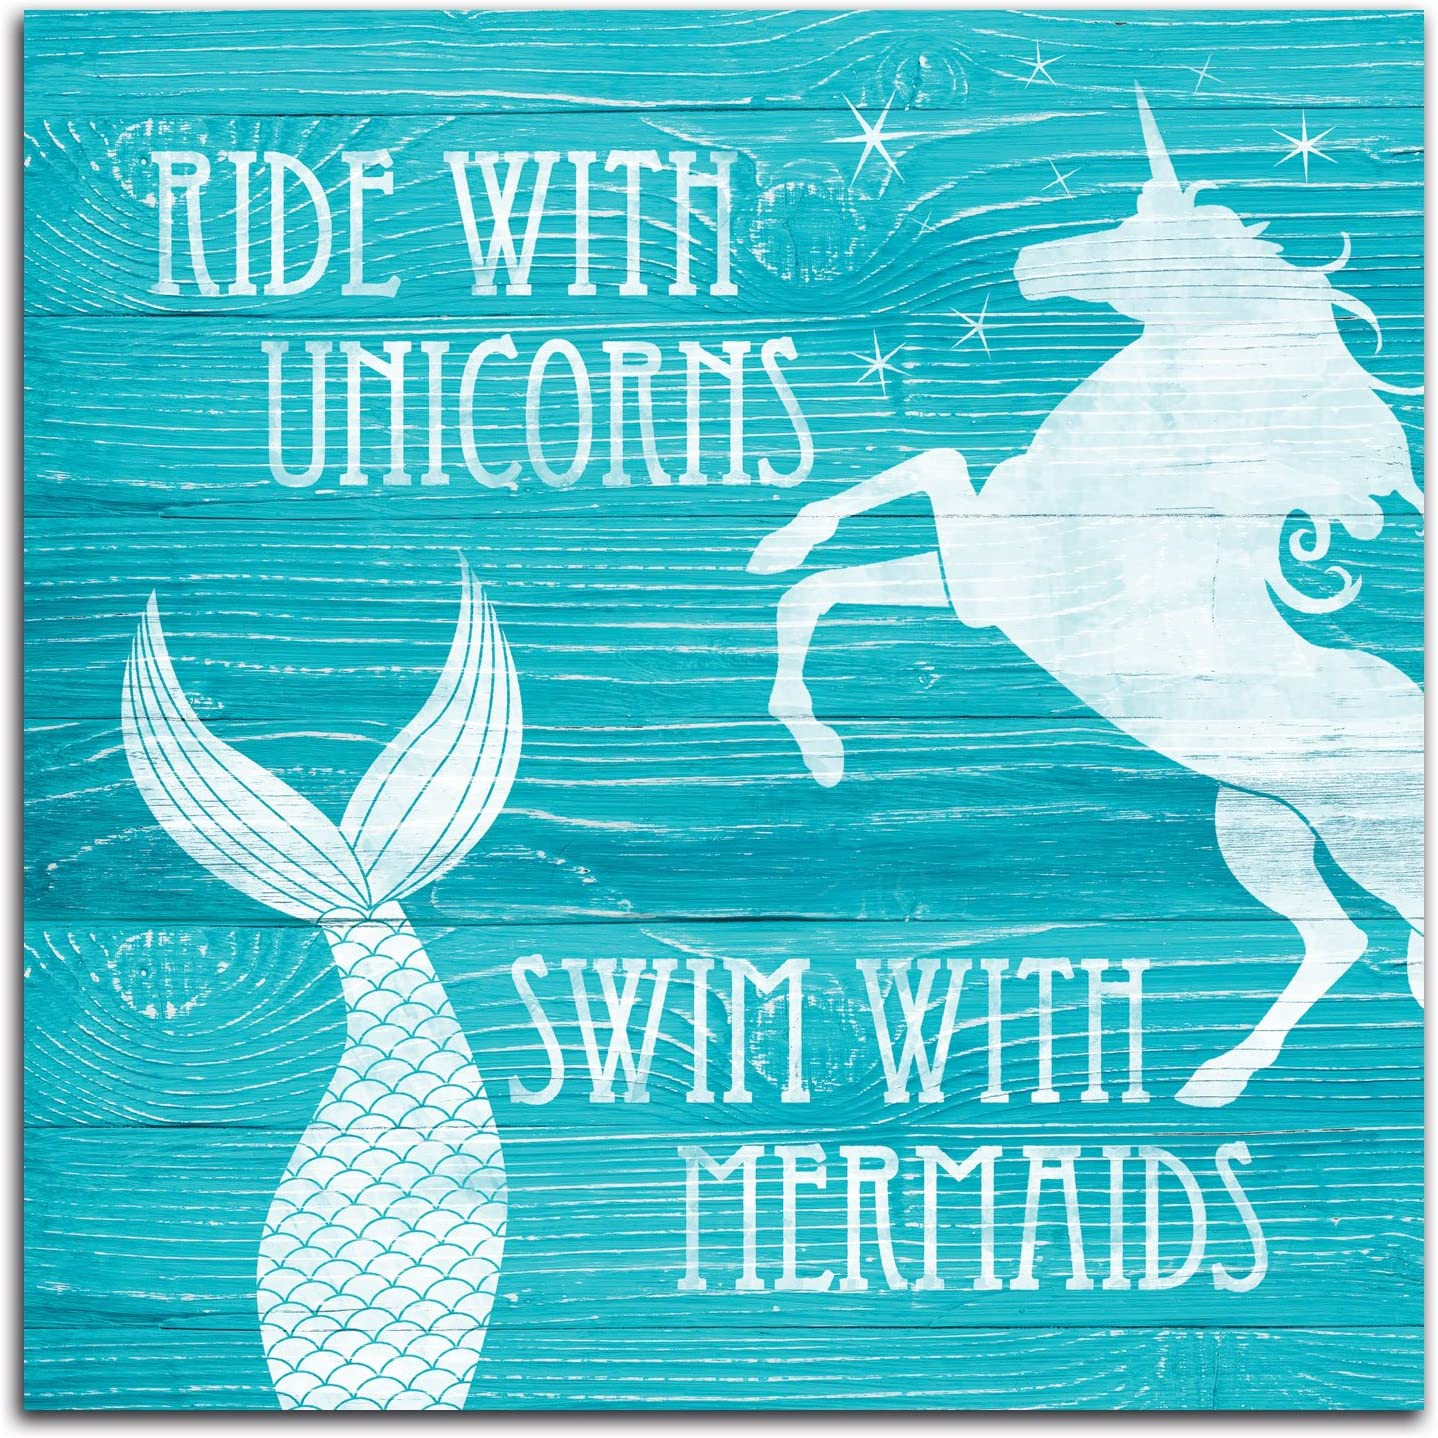 Teal and White Inspirational Distressed Ride With Unicorns, Swim With Mermaids Girls Bedroom Art; One 12x12in Unframed Paper Poster